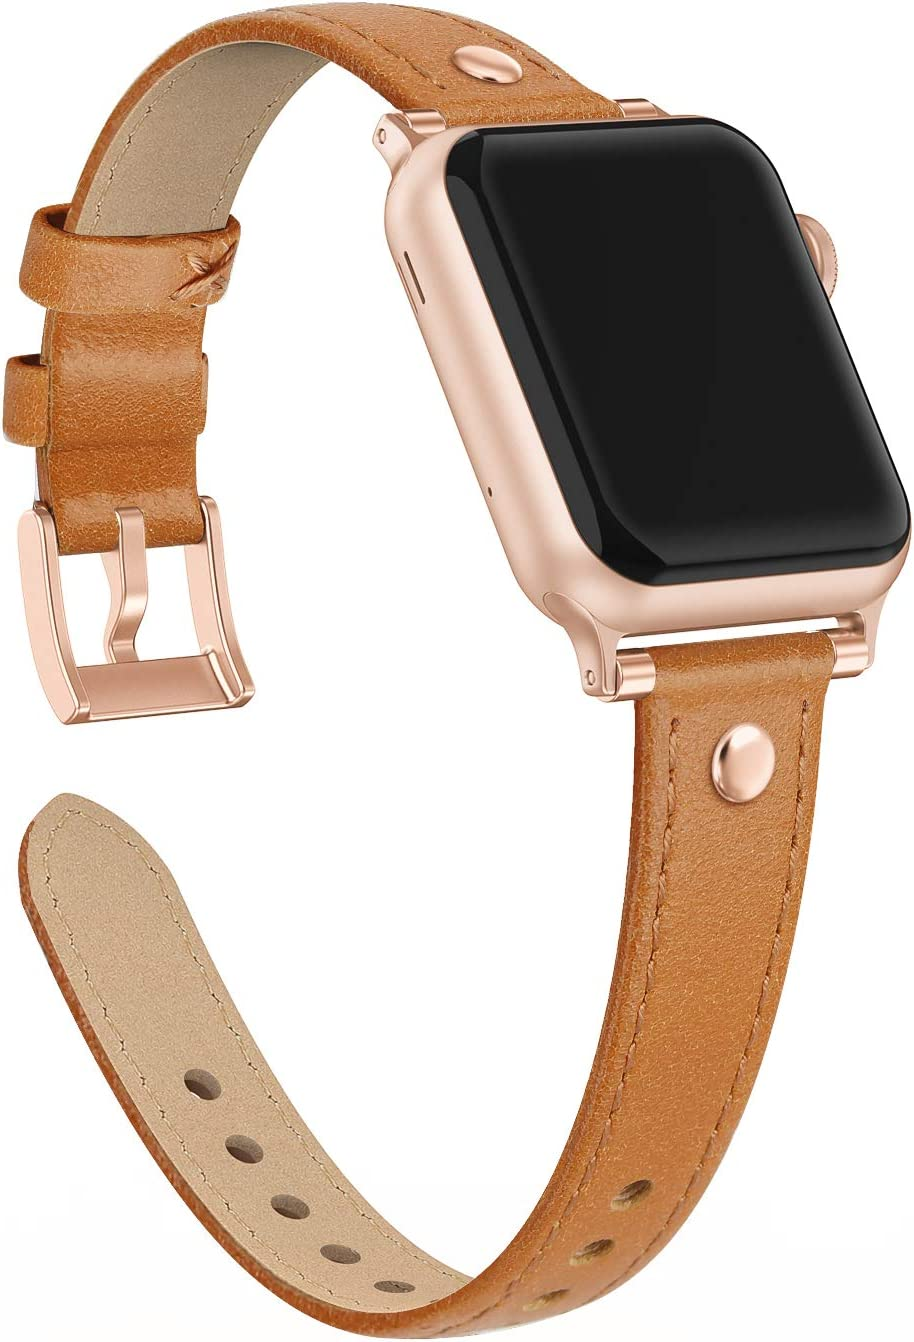 Bandiction Rivets Leather Band Compatible with Apple Watch Band 38mm 40mm, Slim Dual Bead Genuine Leather Band Strap for iWatch 5 4 3 2 1 (Orange)